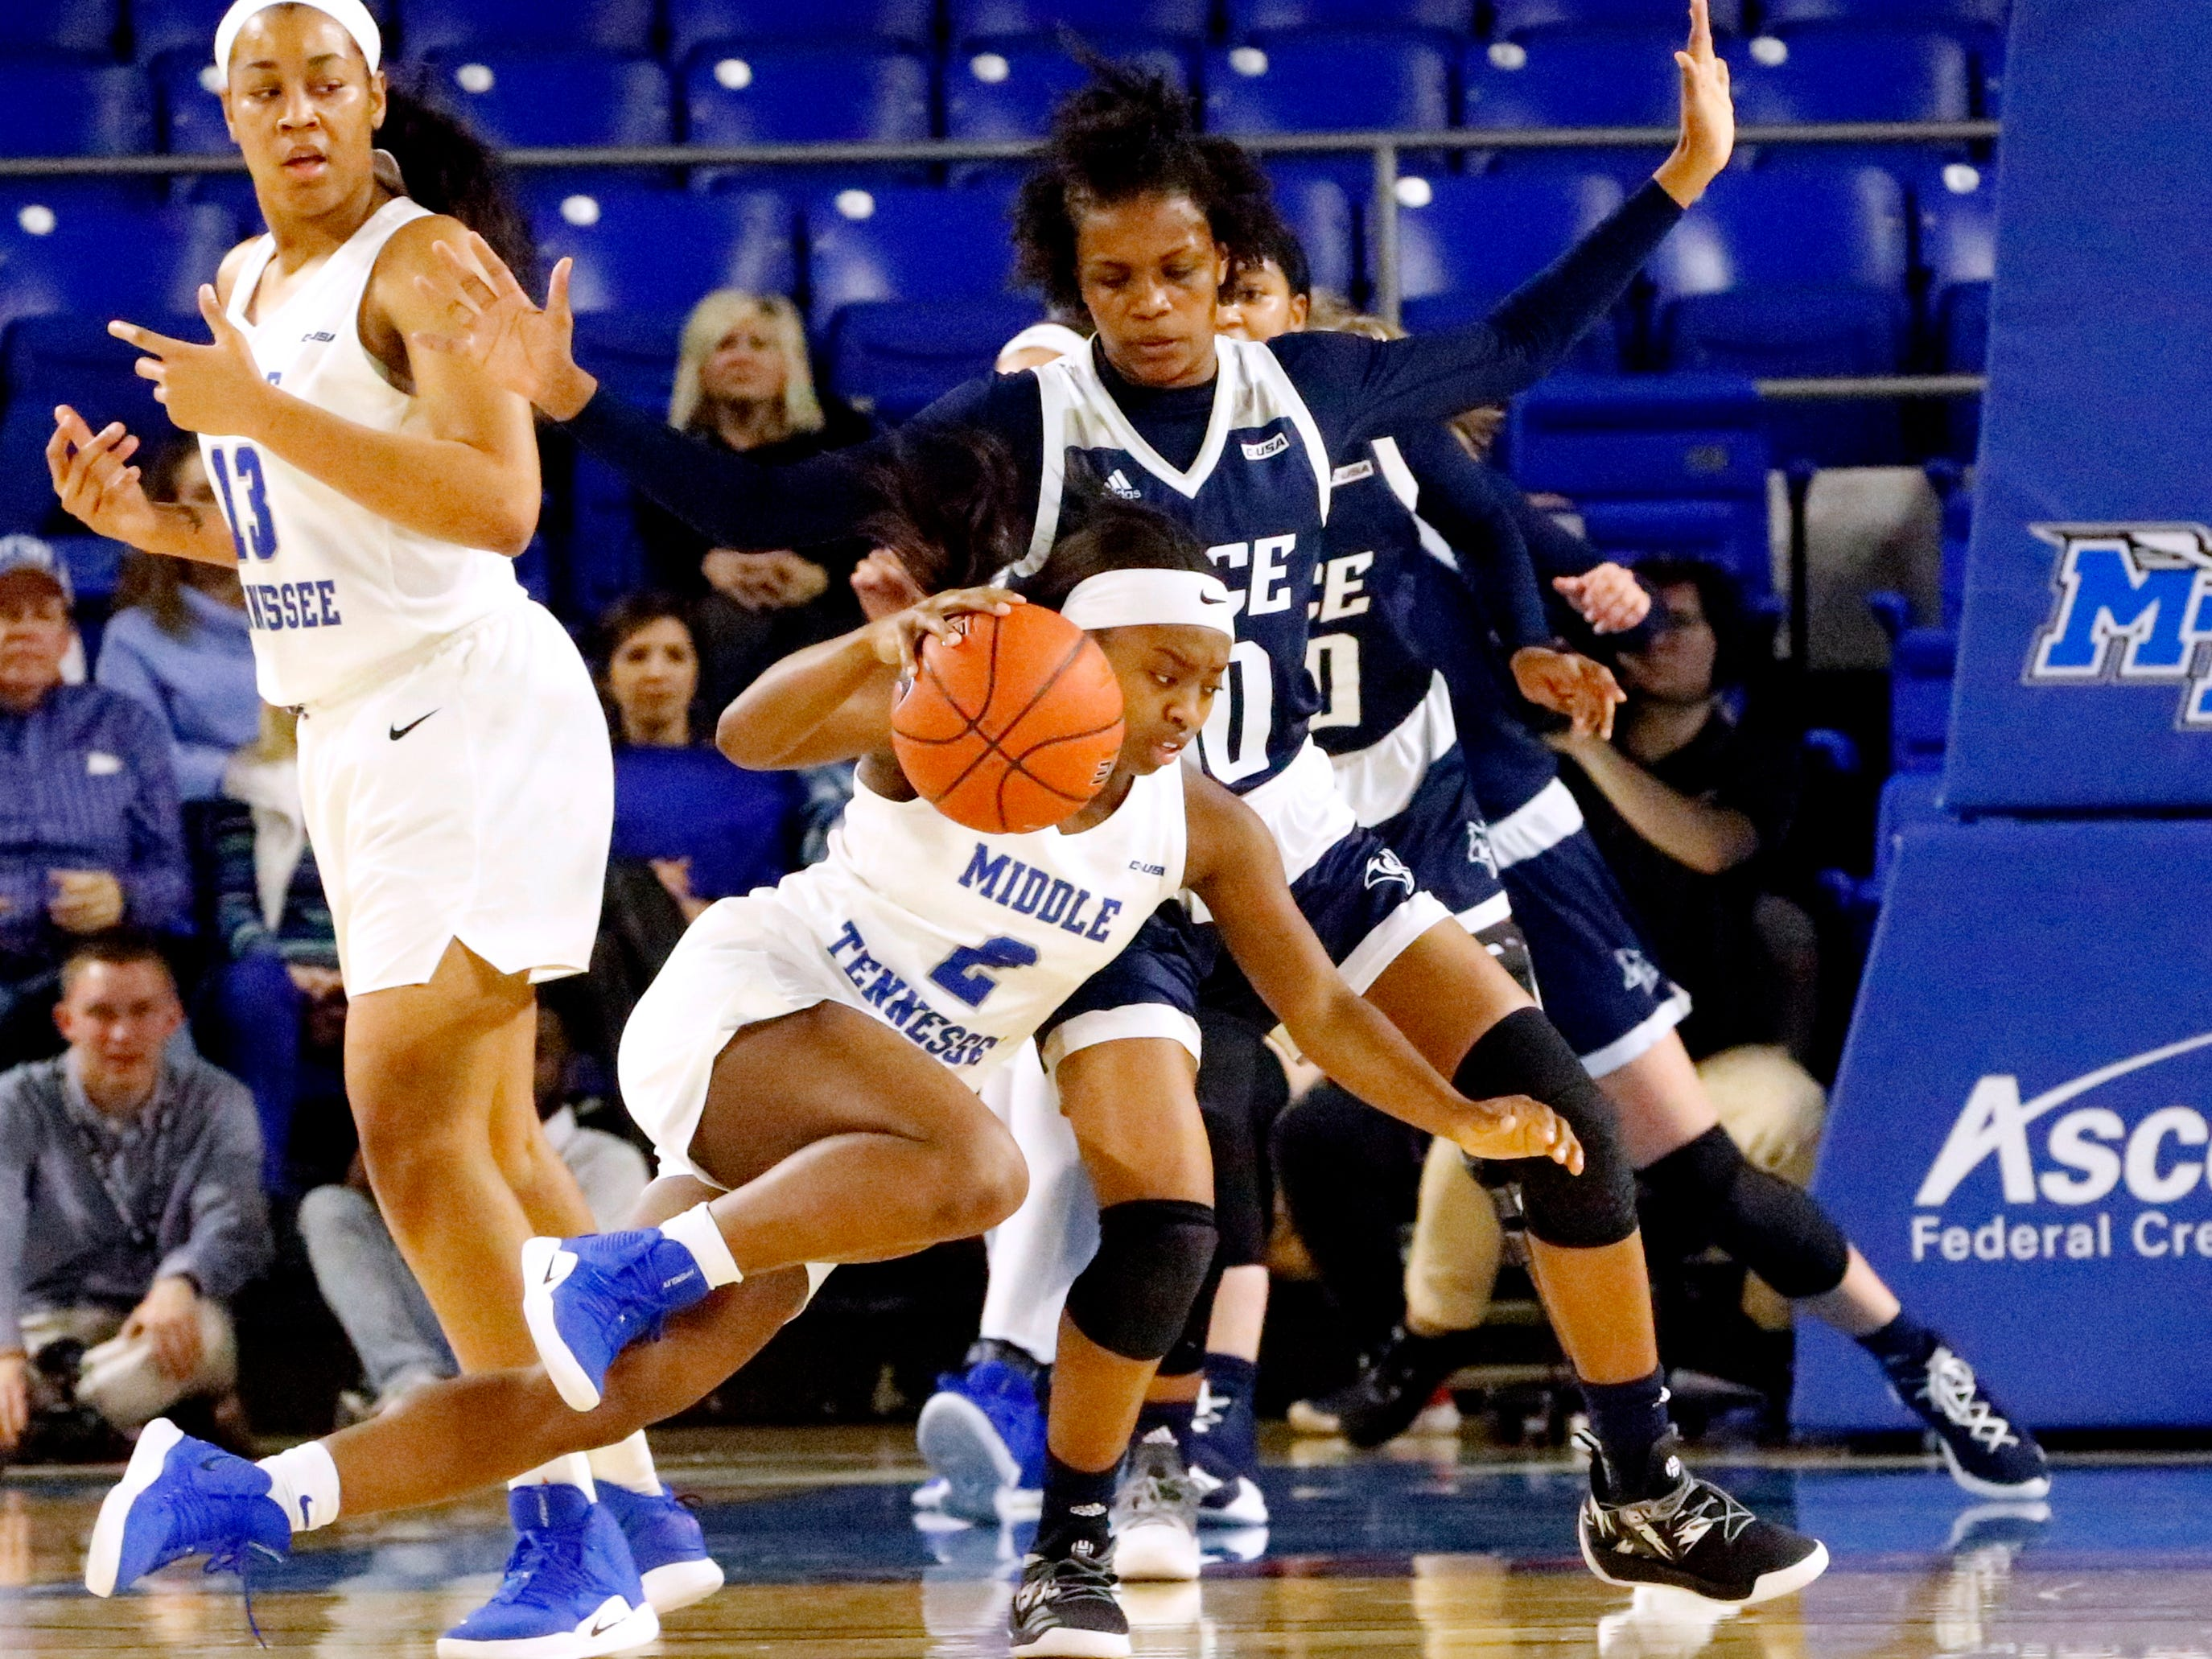 MTSU's guard Taylor Sutton (2) falls to the ground with the ball as Rice's guard Jasmine Smith (10) guards her on Thursday Jan. 24, 2019.